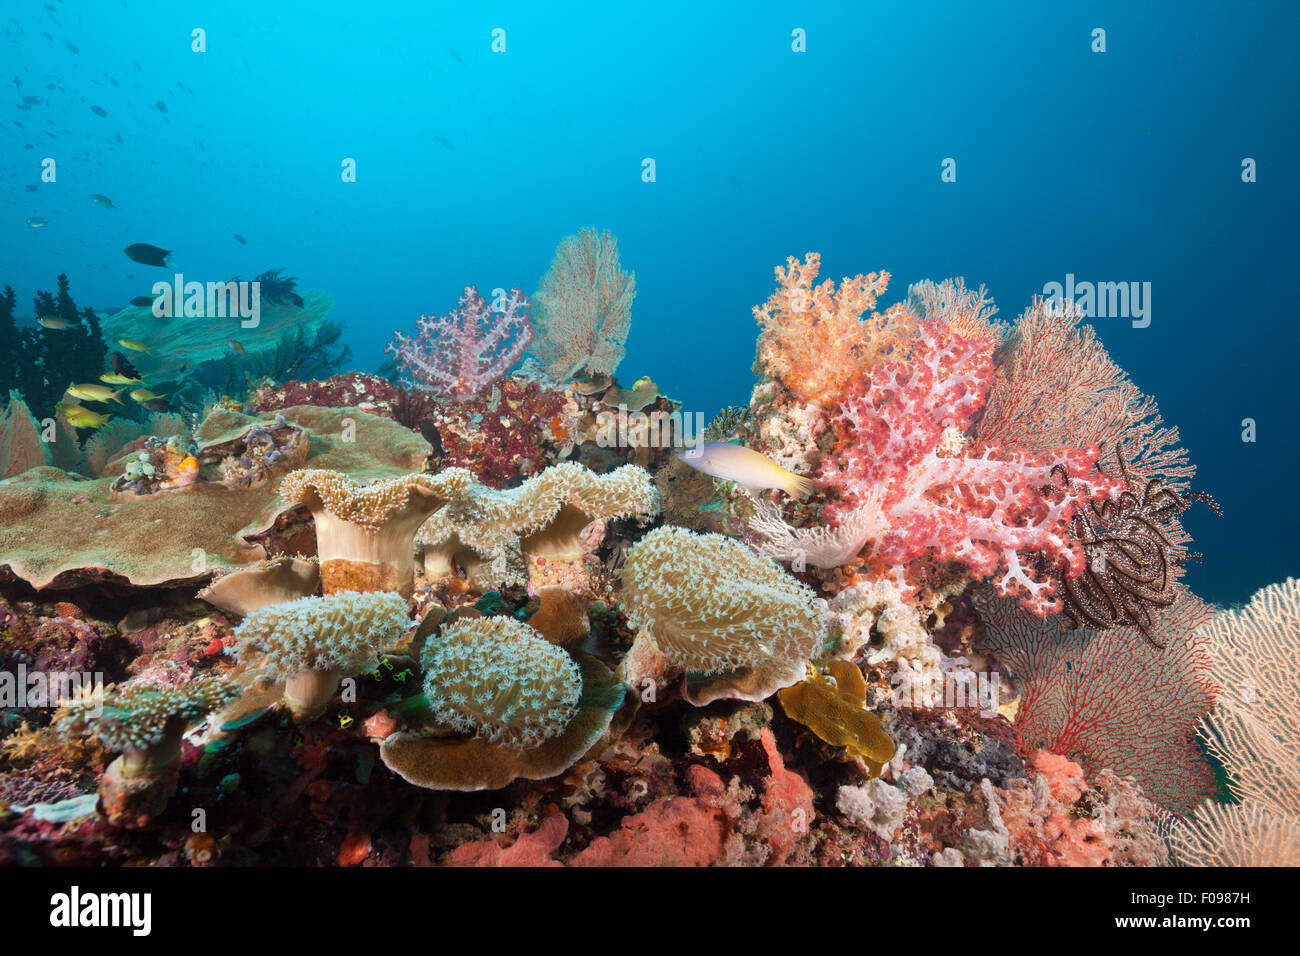 Coral Reef Scenery, Florida Islands, Solomon Islands - Stock Image